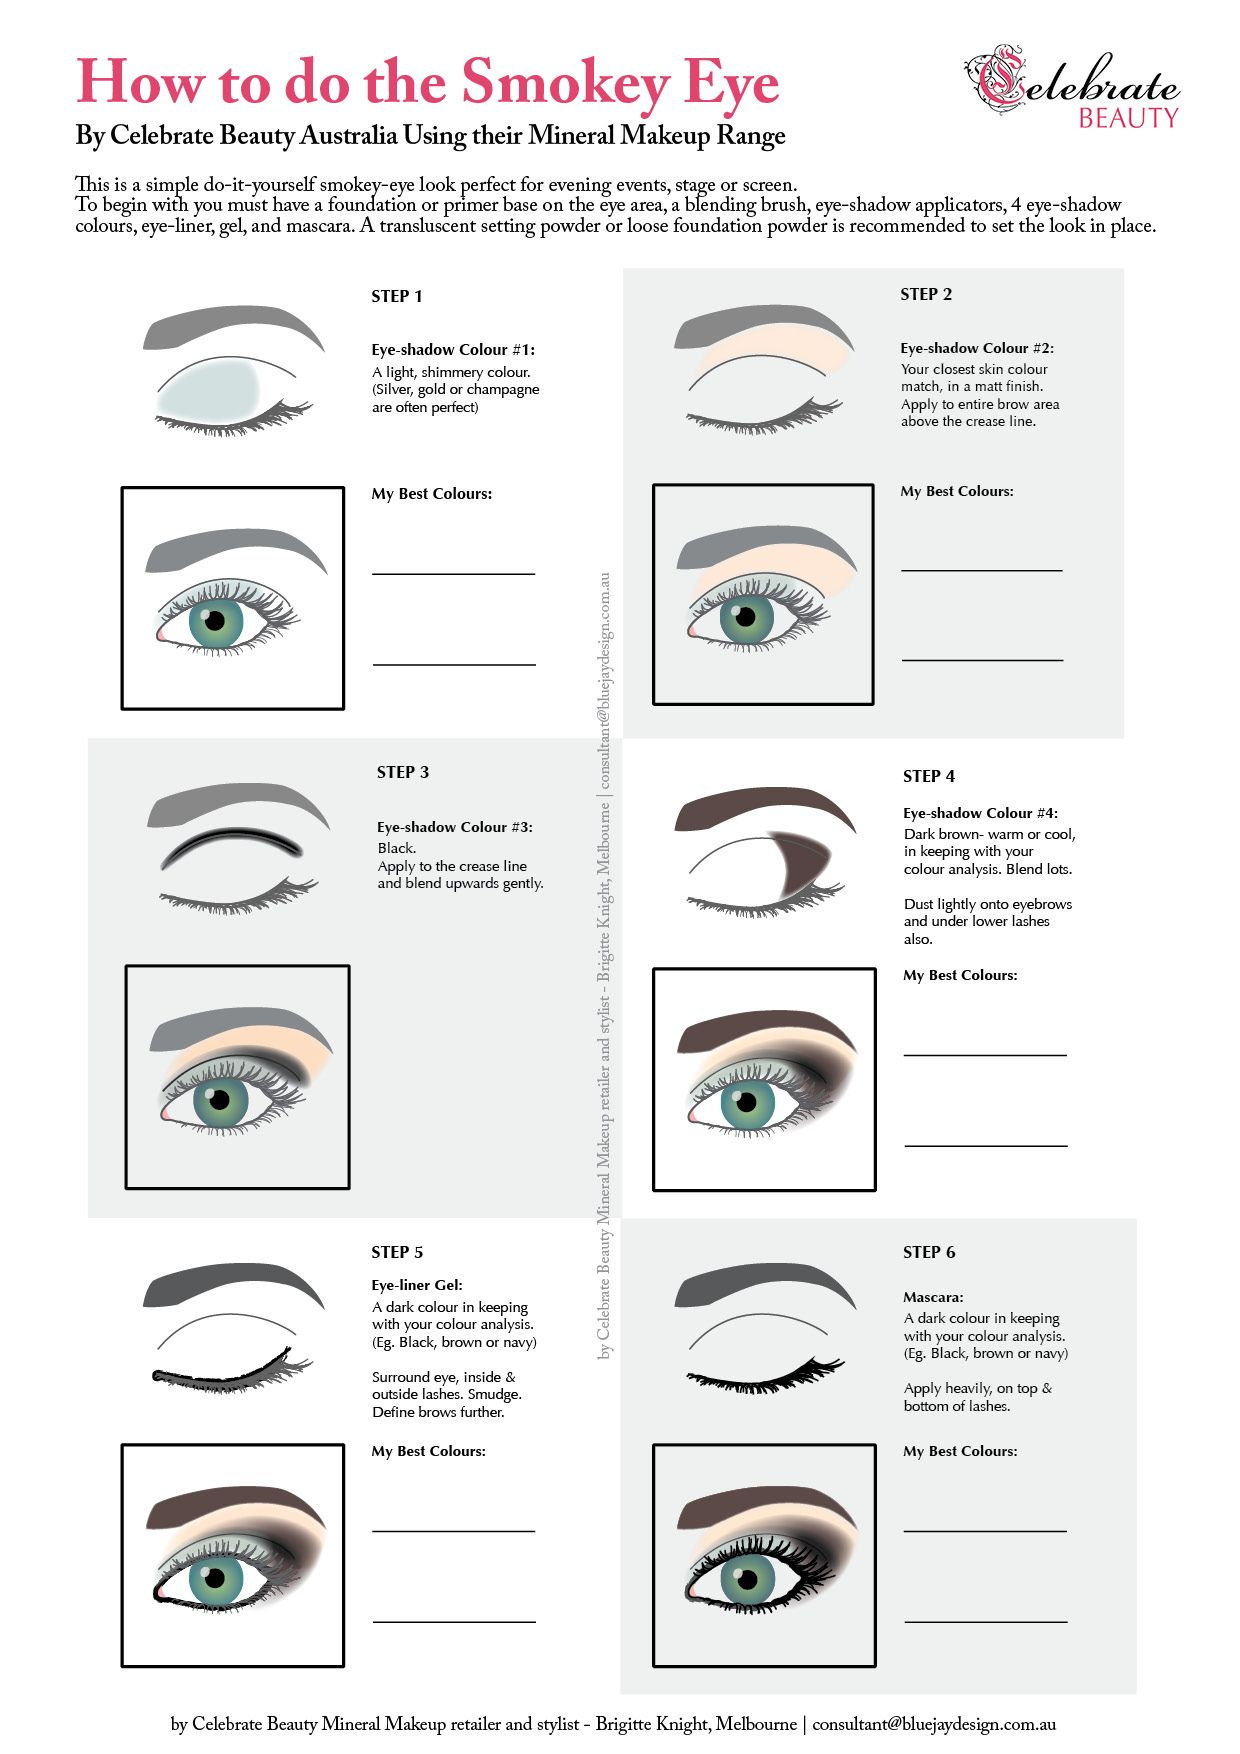 How to do the smokey eye diagram for makeup application visit my how to do the smokey eye diagram for makeup application visit my board for the upcoming course in melbourne smokeyeye makeuptutorial makeupdemo ccuart Images